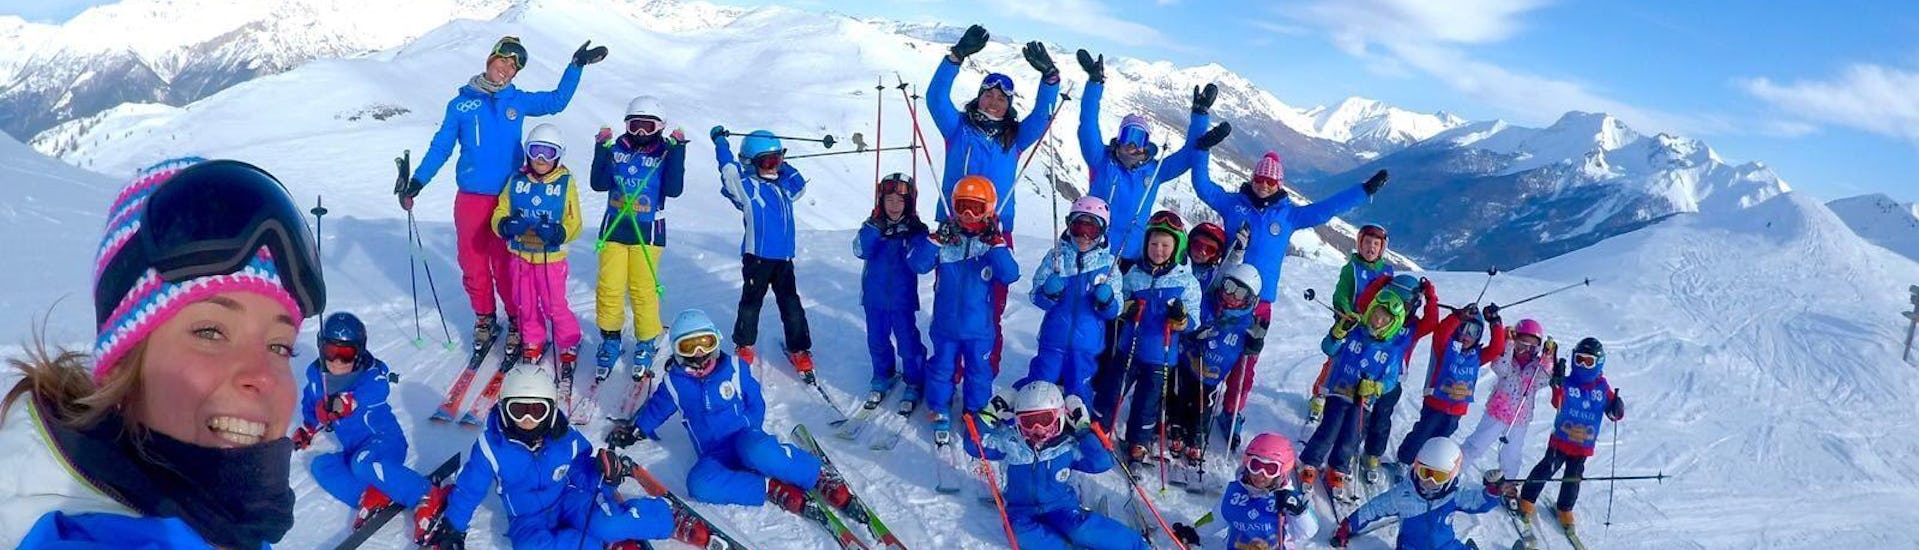 A group of young skiers is taking part in the Kids Ski Lessons (5-12 y.) - Holidays - Beginner organized by the ski school Scuola di Sci Olimpionica in the Via Lattea ski resort in Sestriere.